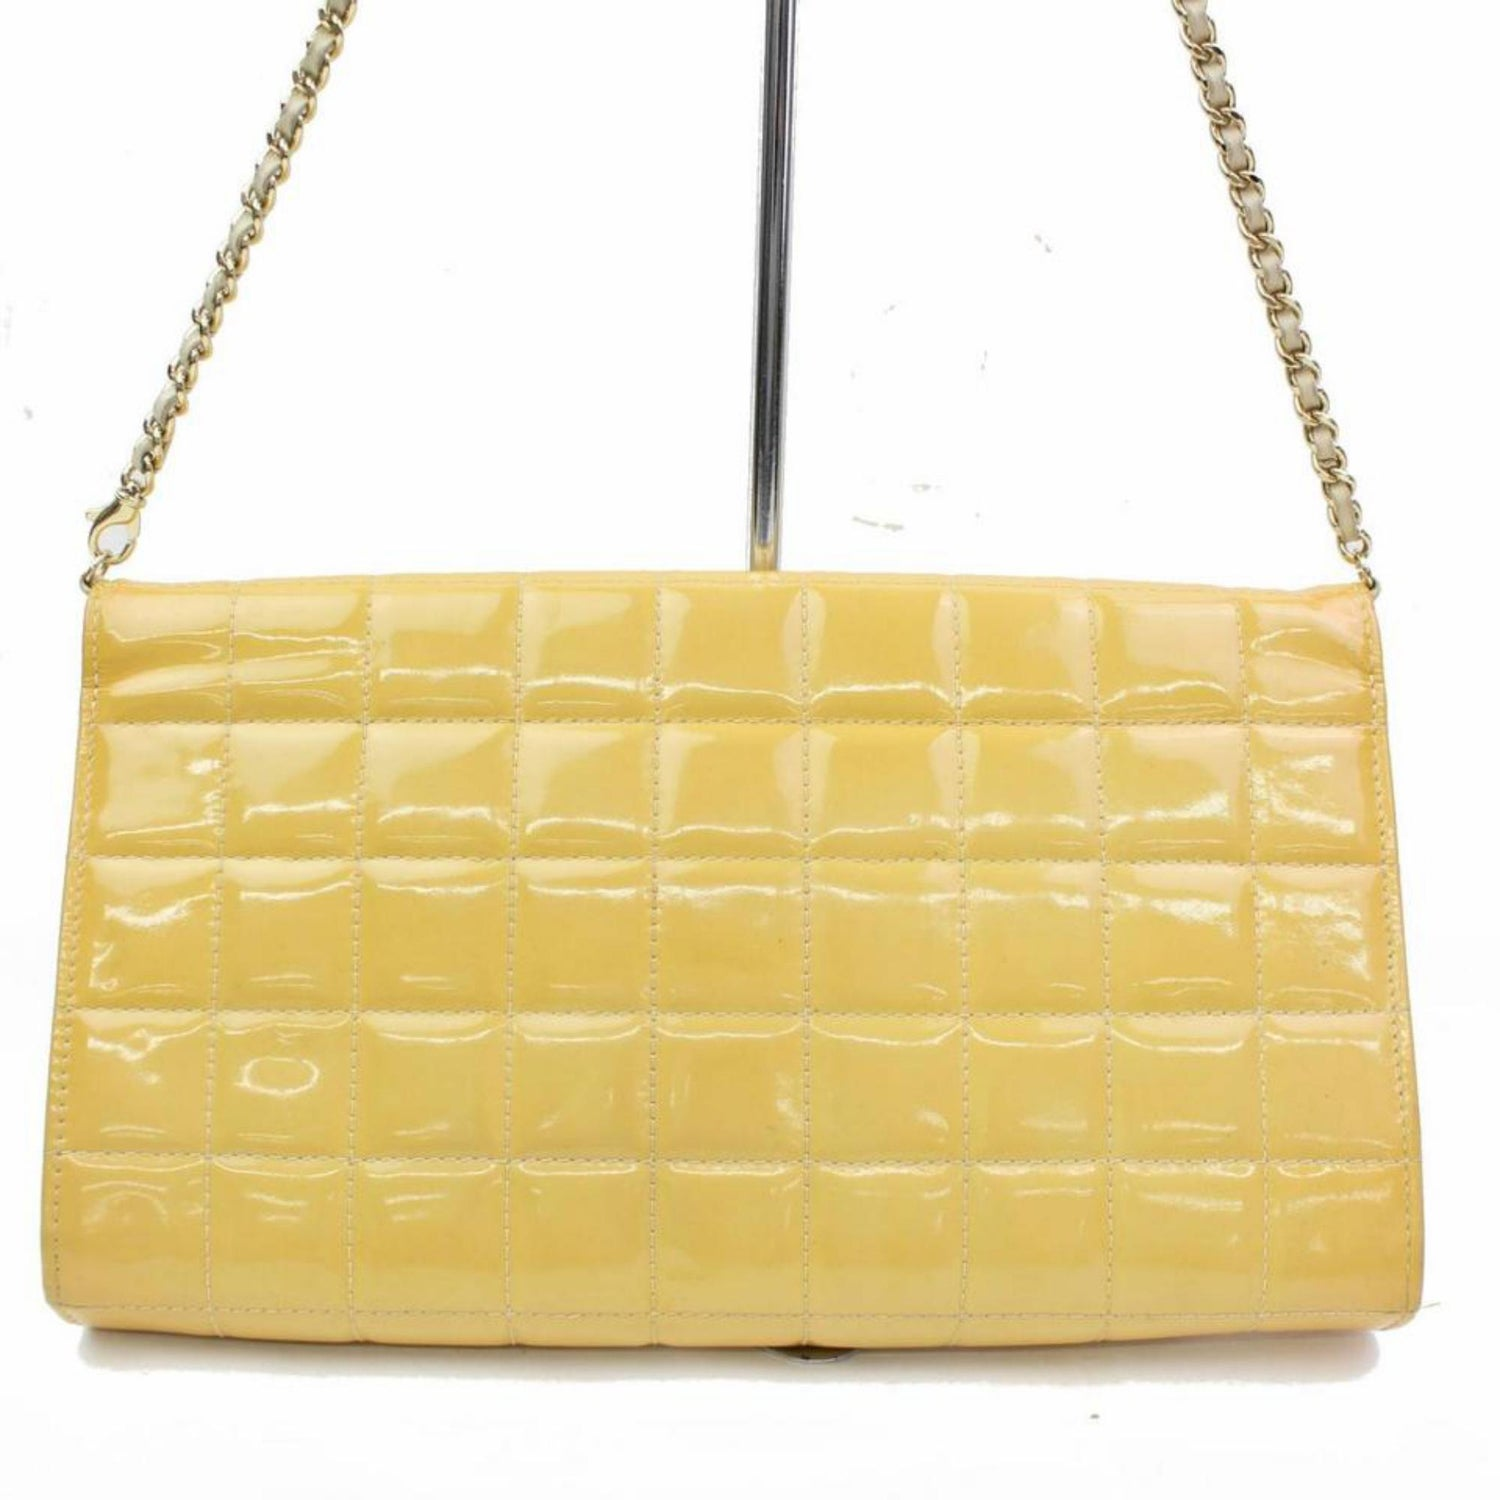 7ee21efa2051 Chanel East West Quilted Flap 866712 Yellow Patent Leather Shoulder Bag For  Sale at 1stdibs